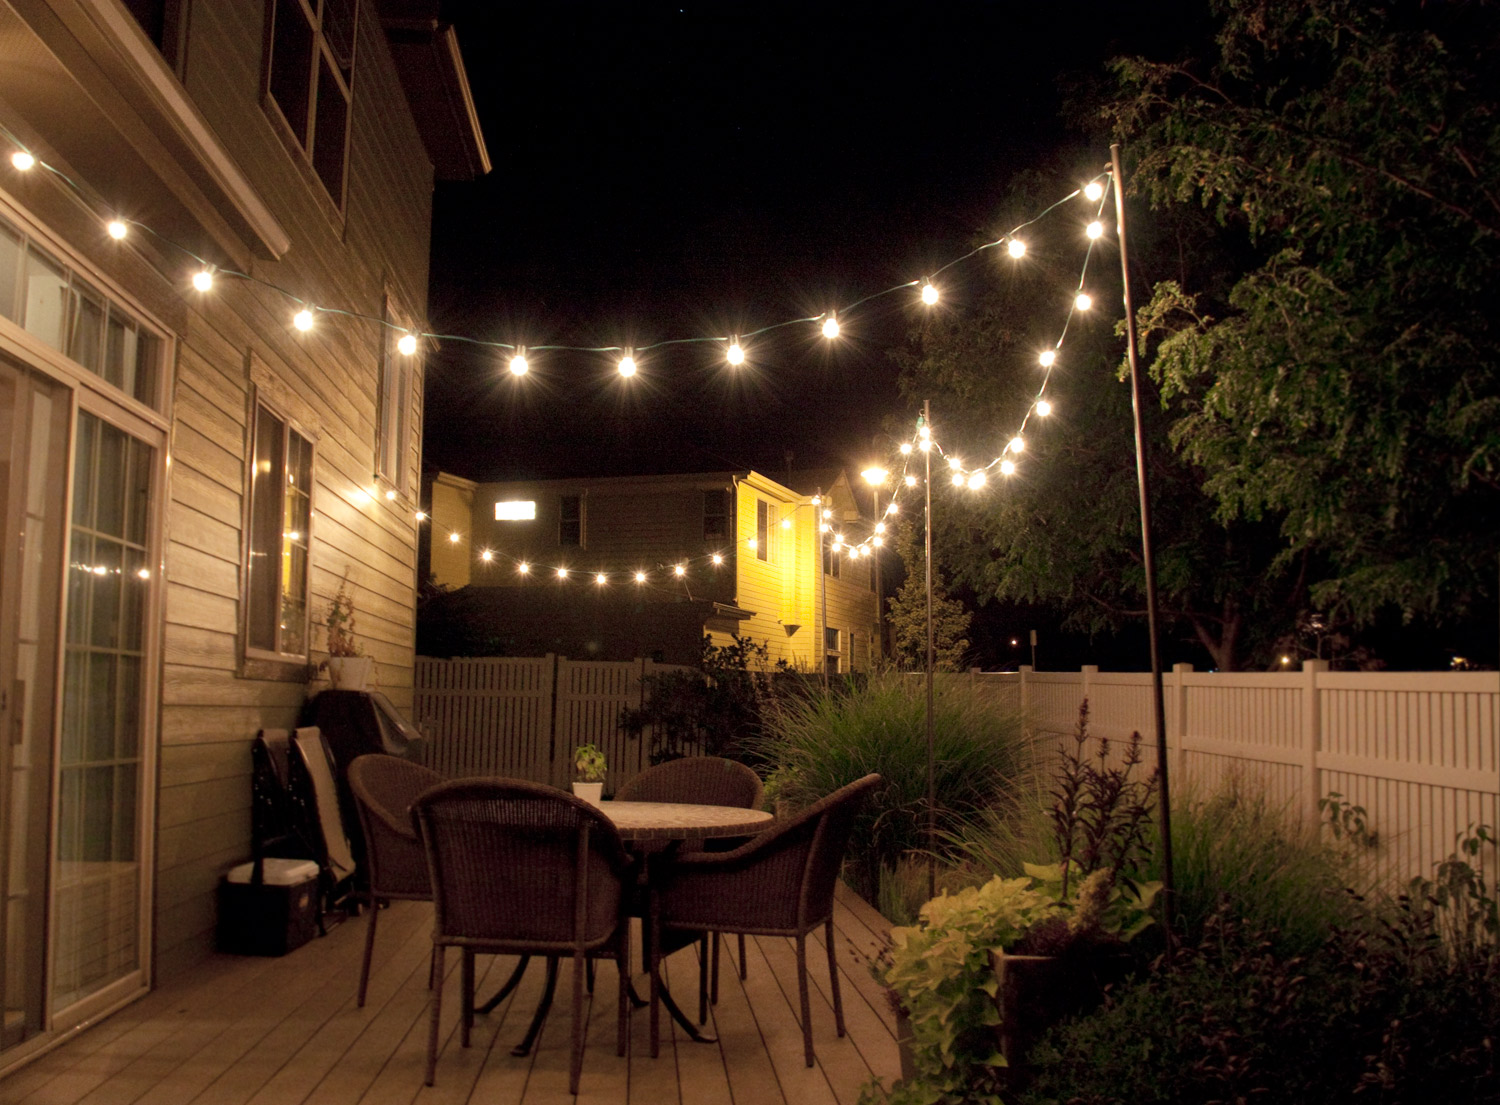 outside patio lighting ideas. 17 outdoor lighting ideas for the garden scattered thoughts of a crafty mom by jamie sanders outside patio